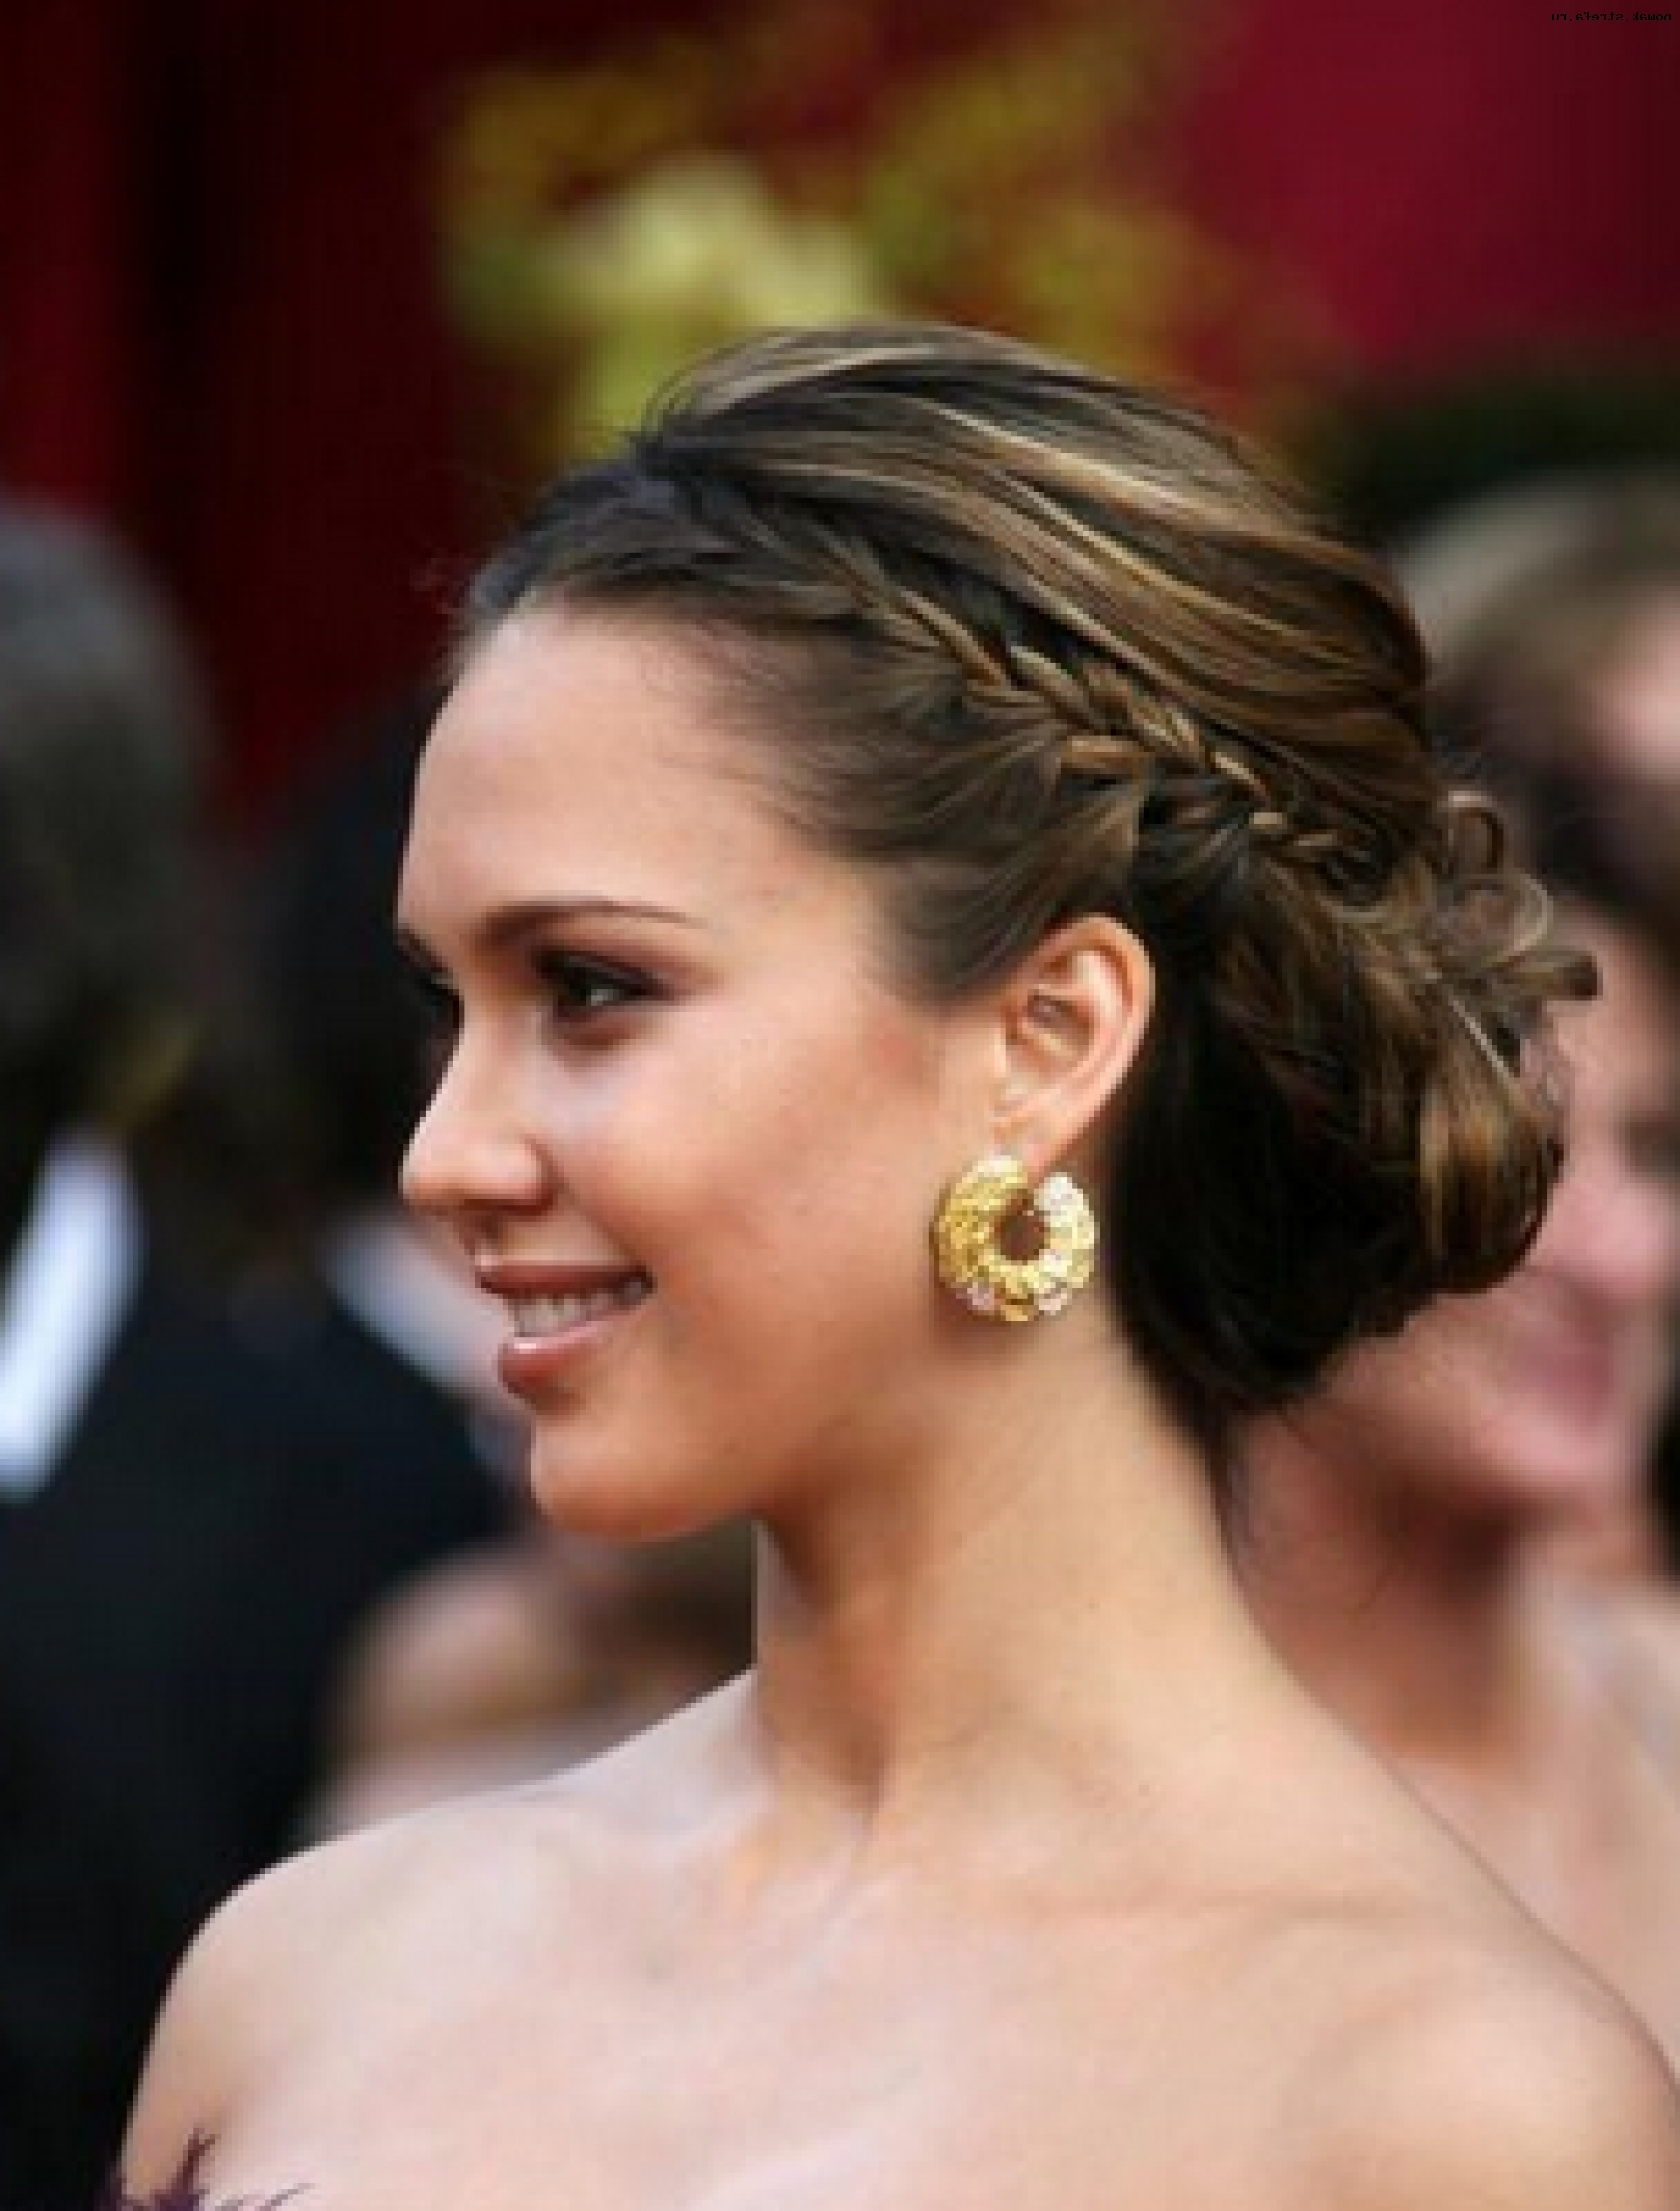 updo-hairstyles-for-short-to-medium-hair.